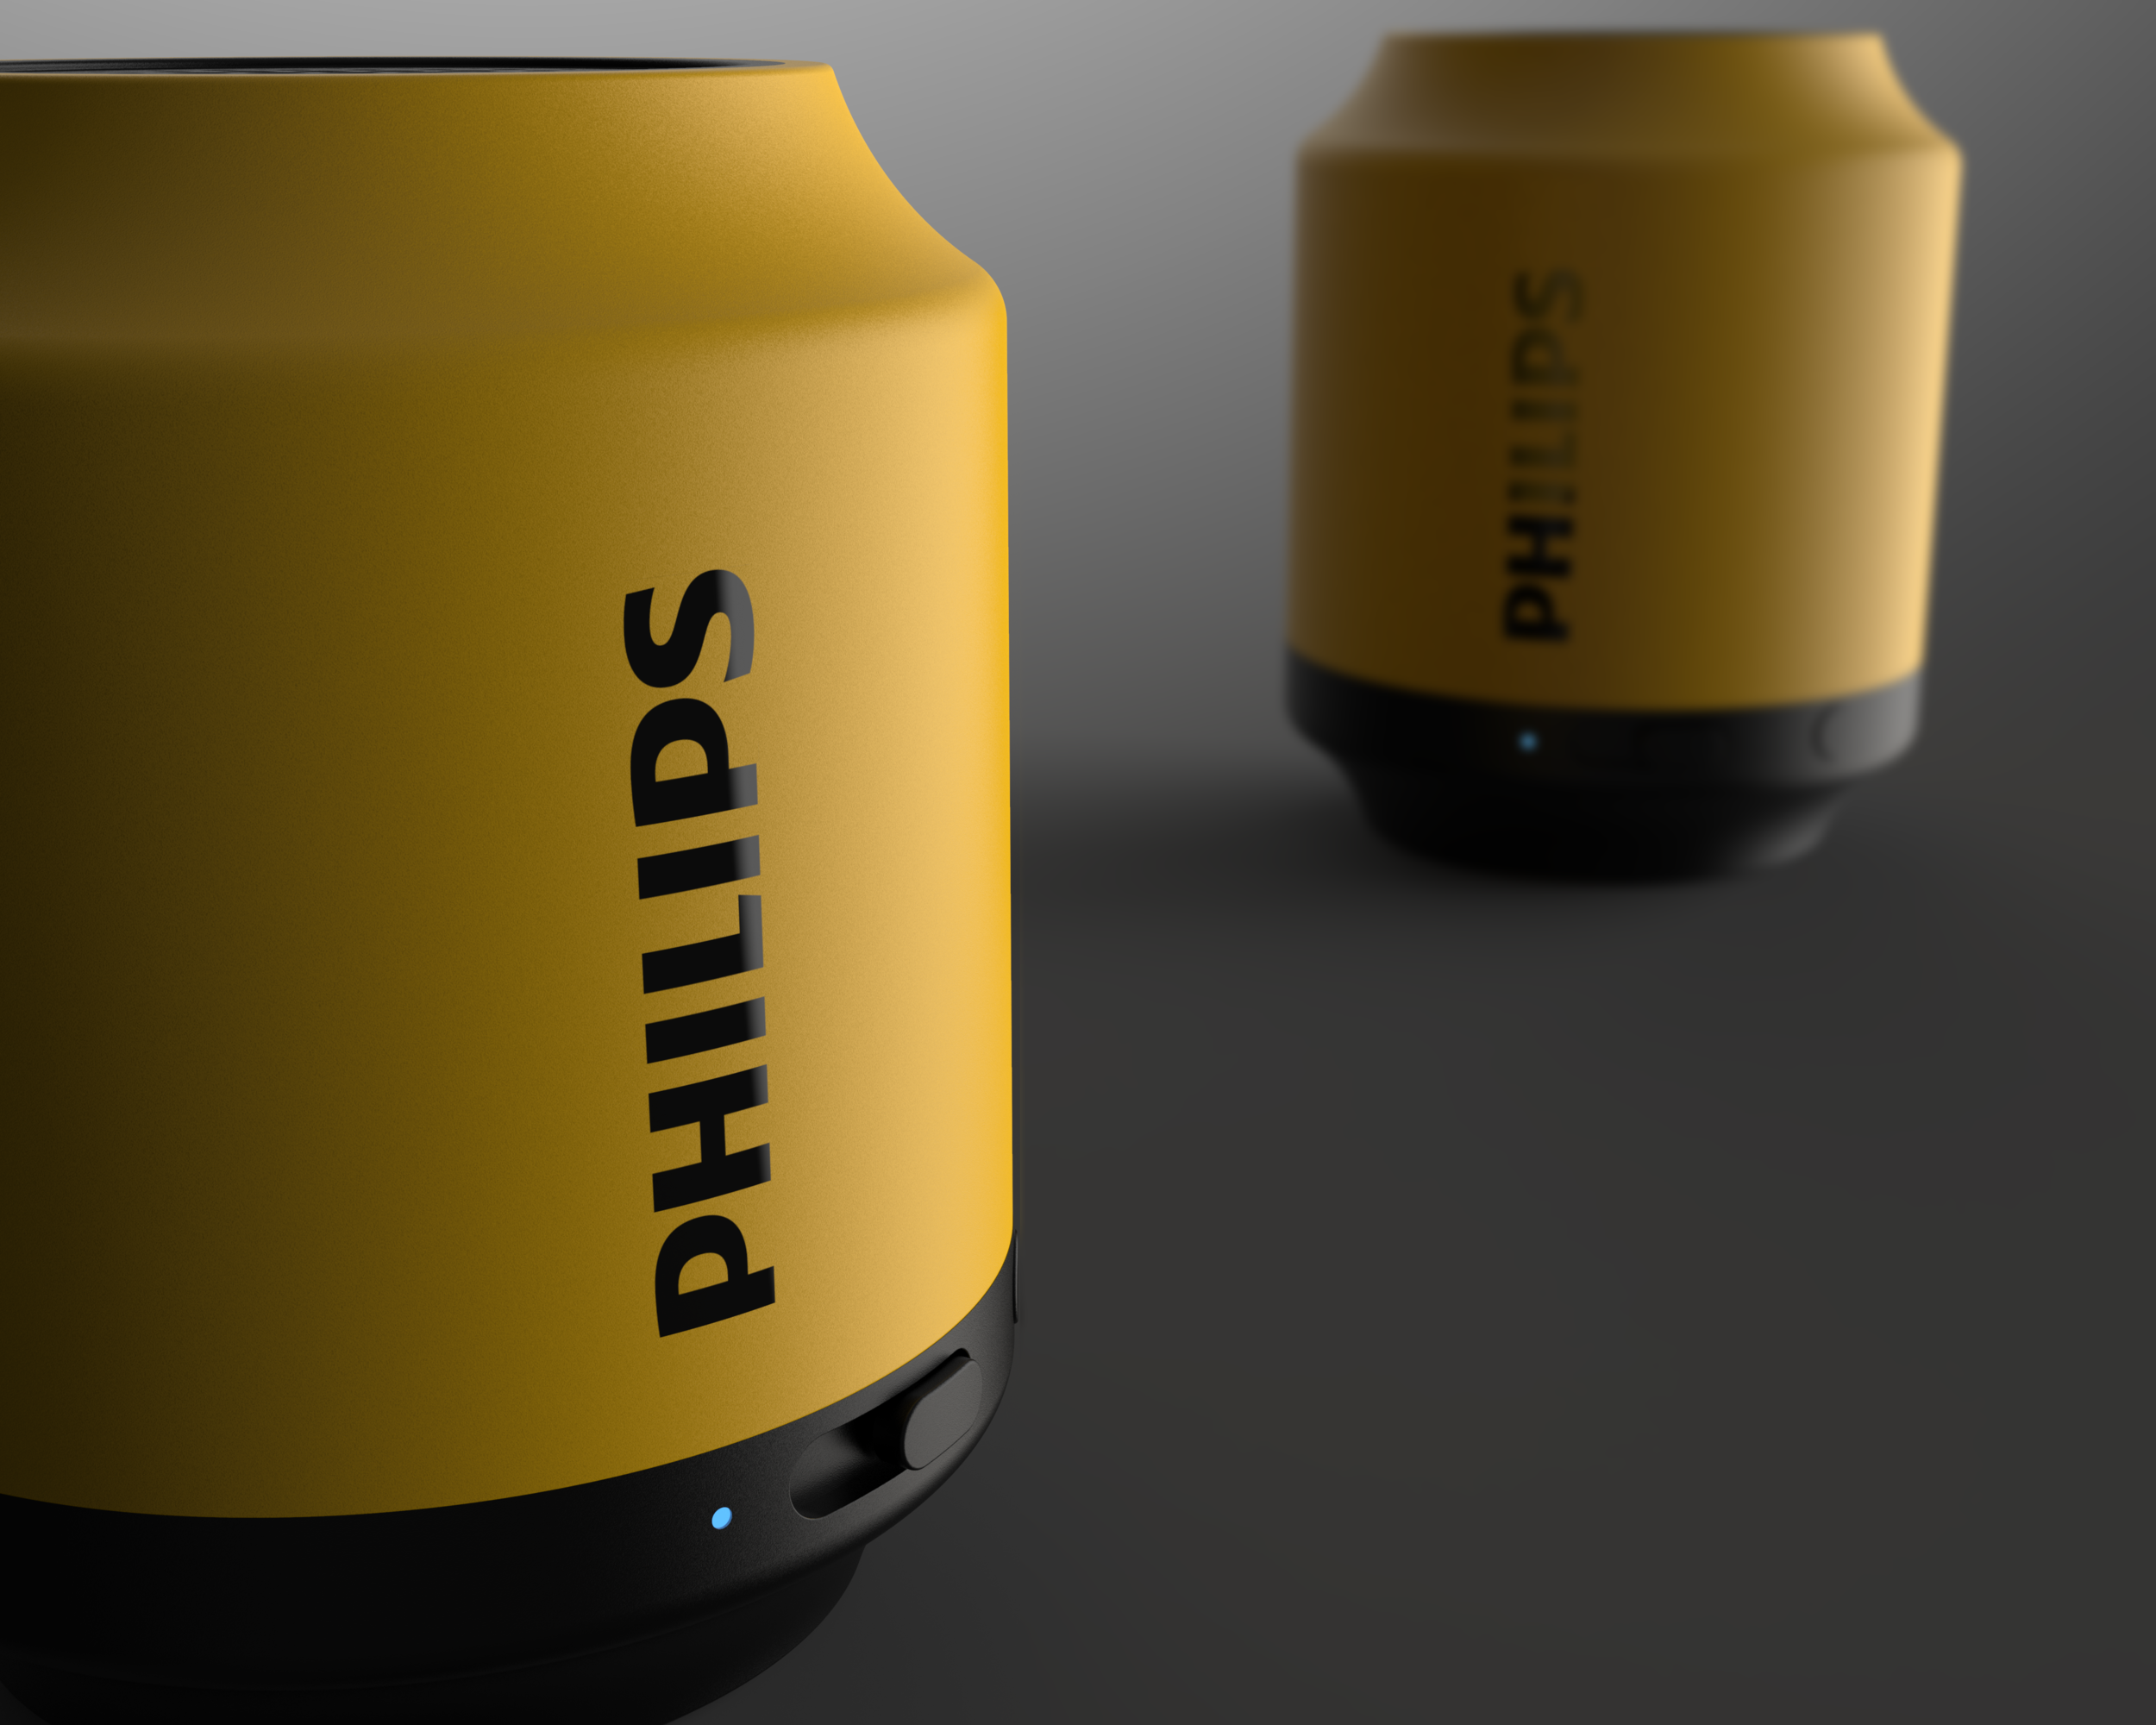 philips_bs.624 cópia.png